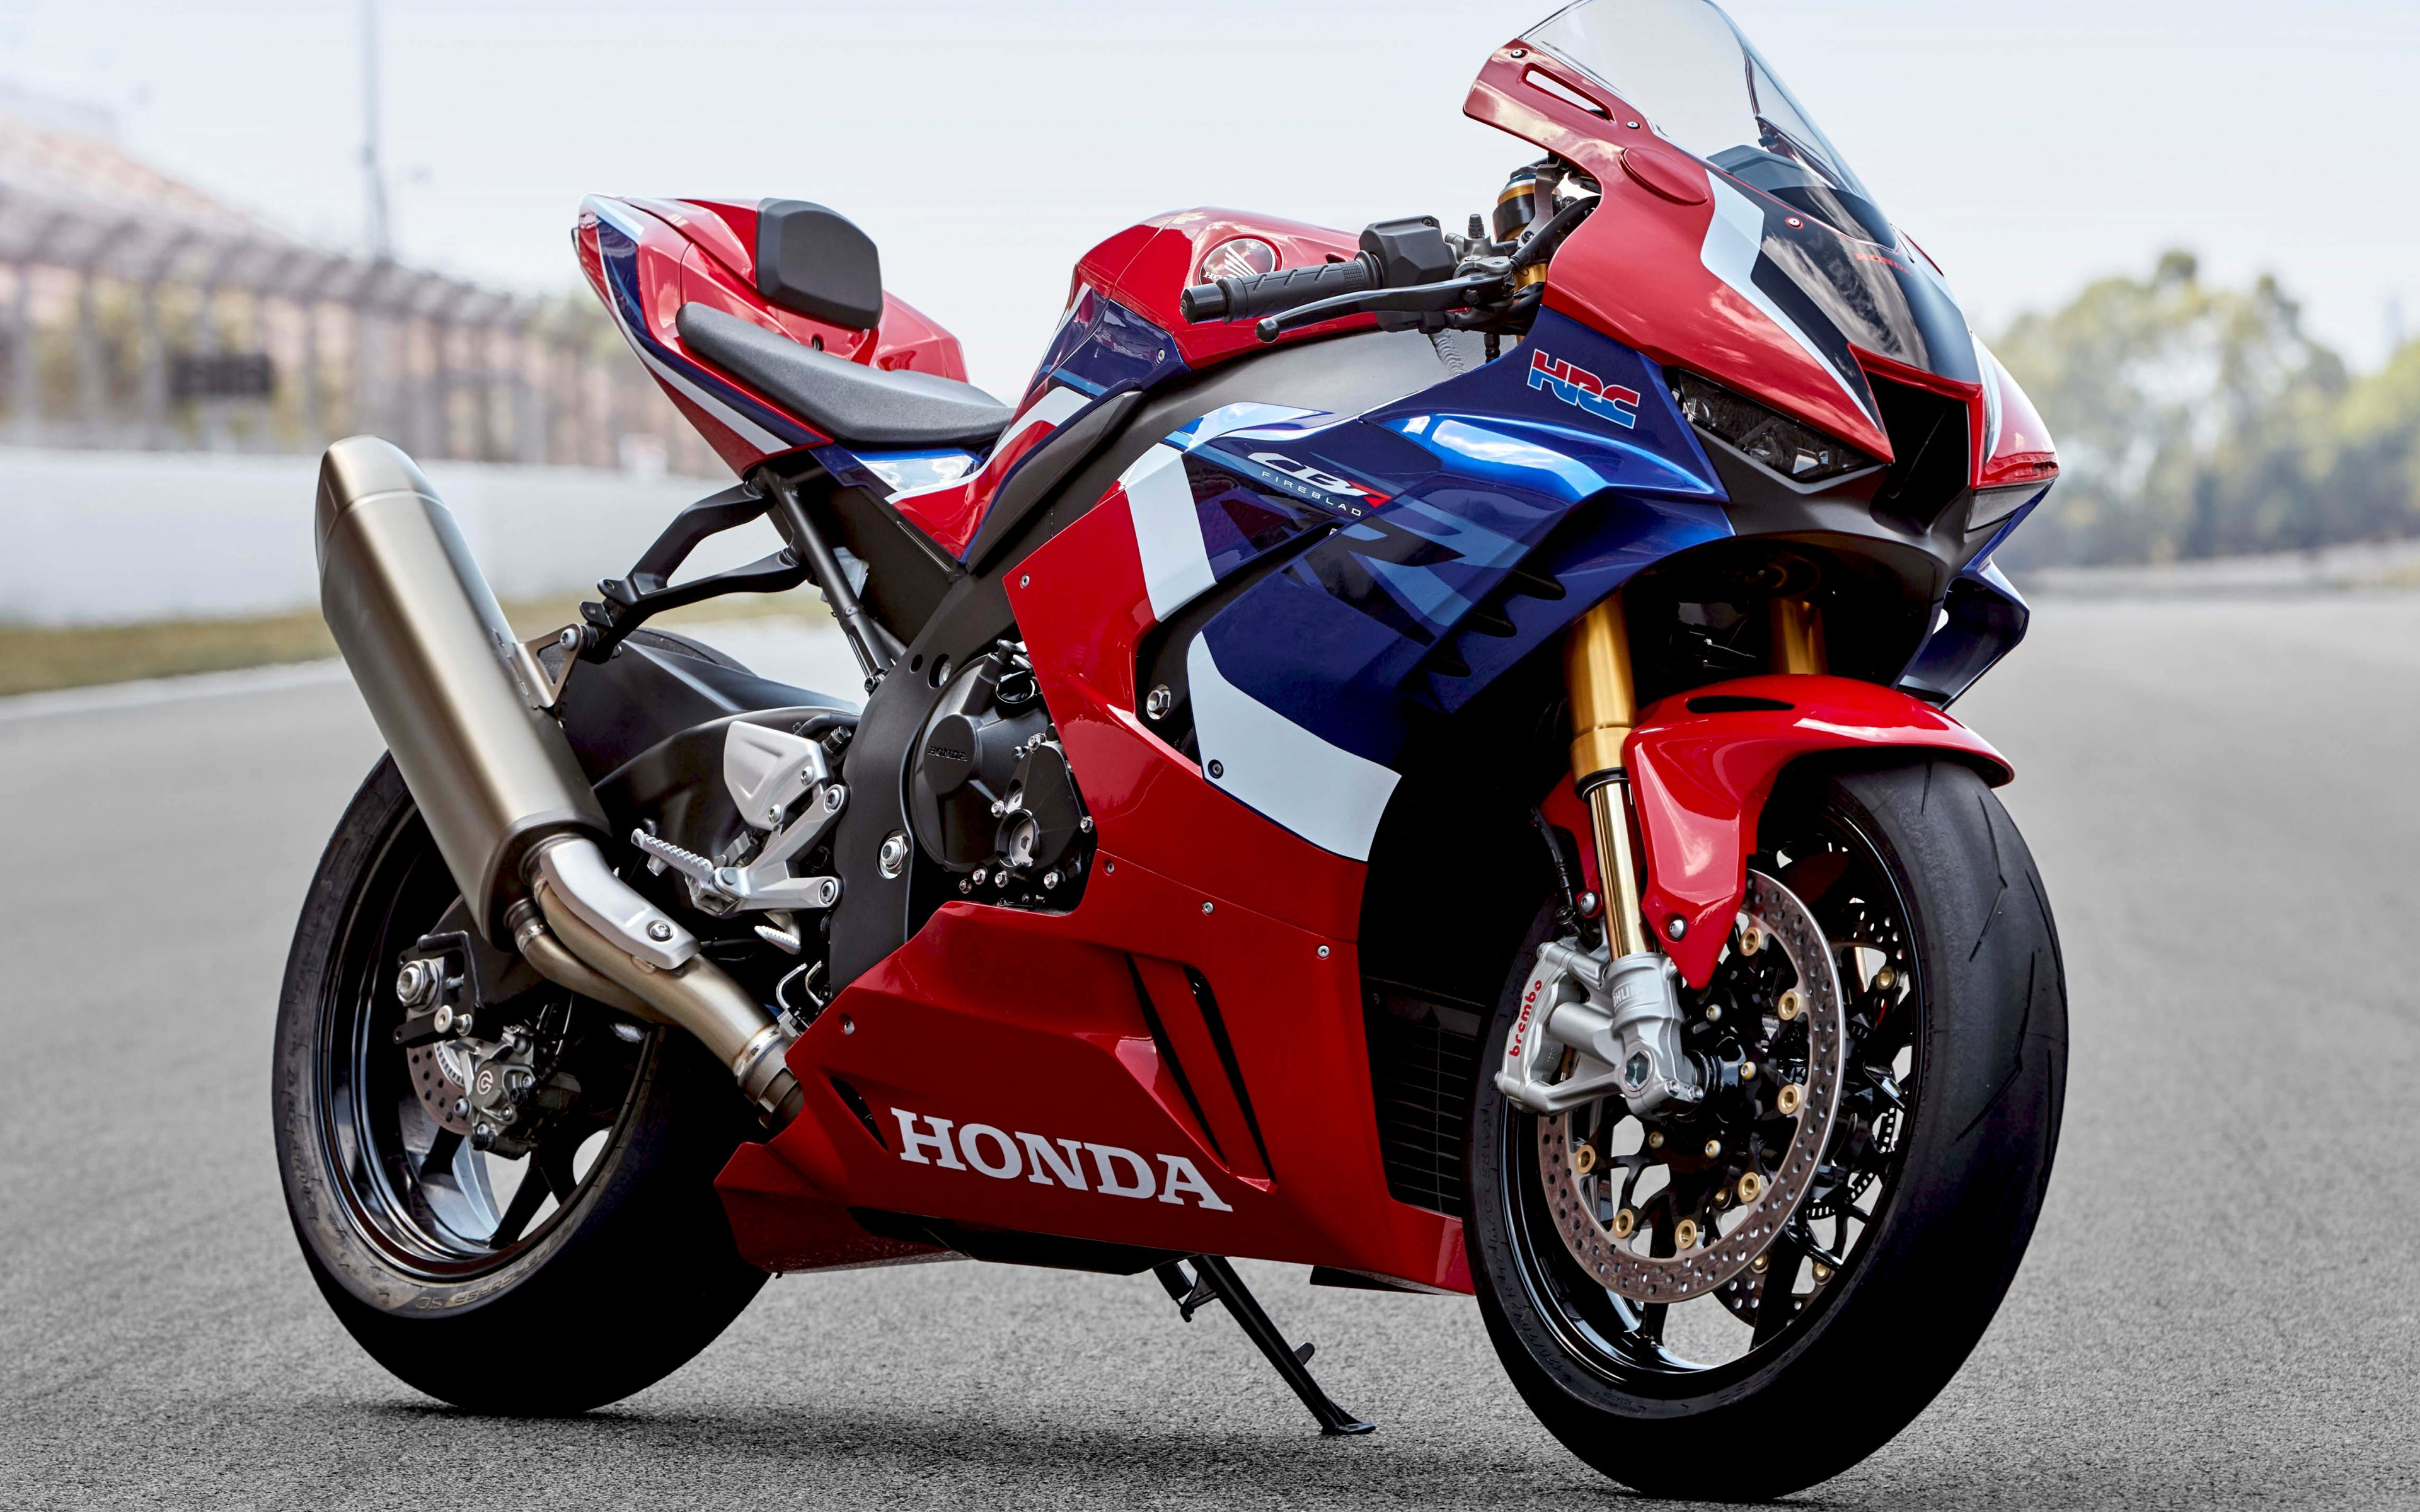 Honda CBR1000RR R SP wallpaper 3840x2400